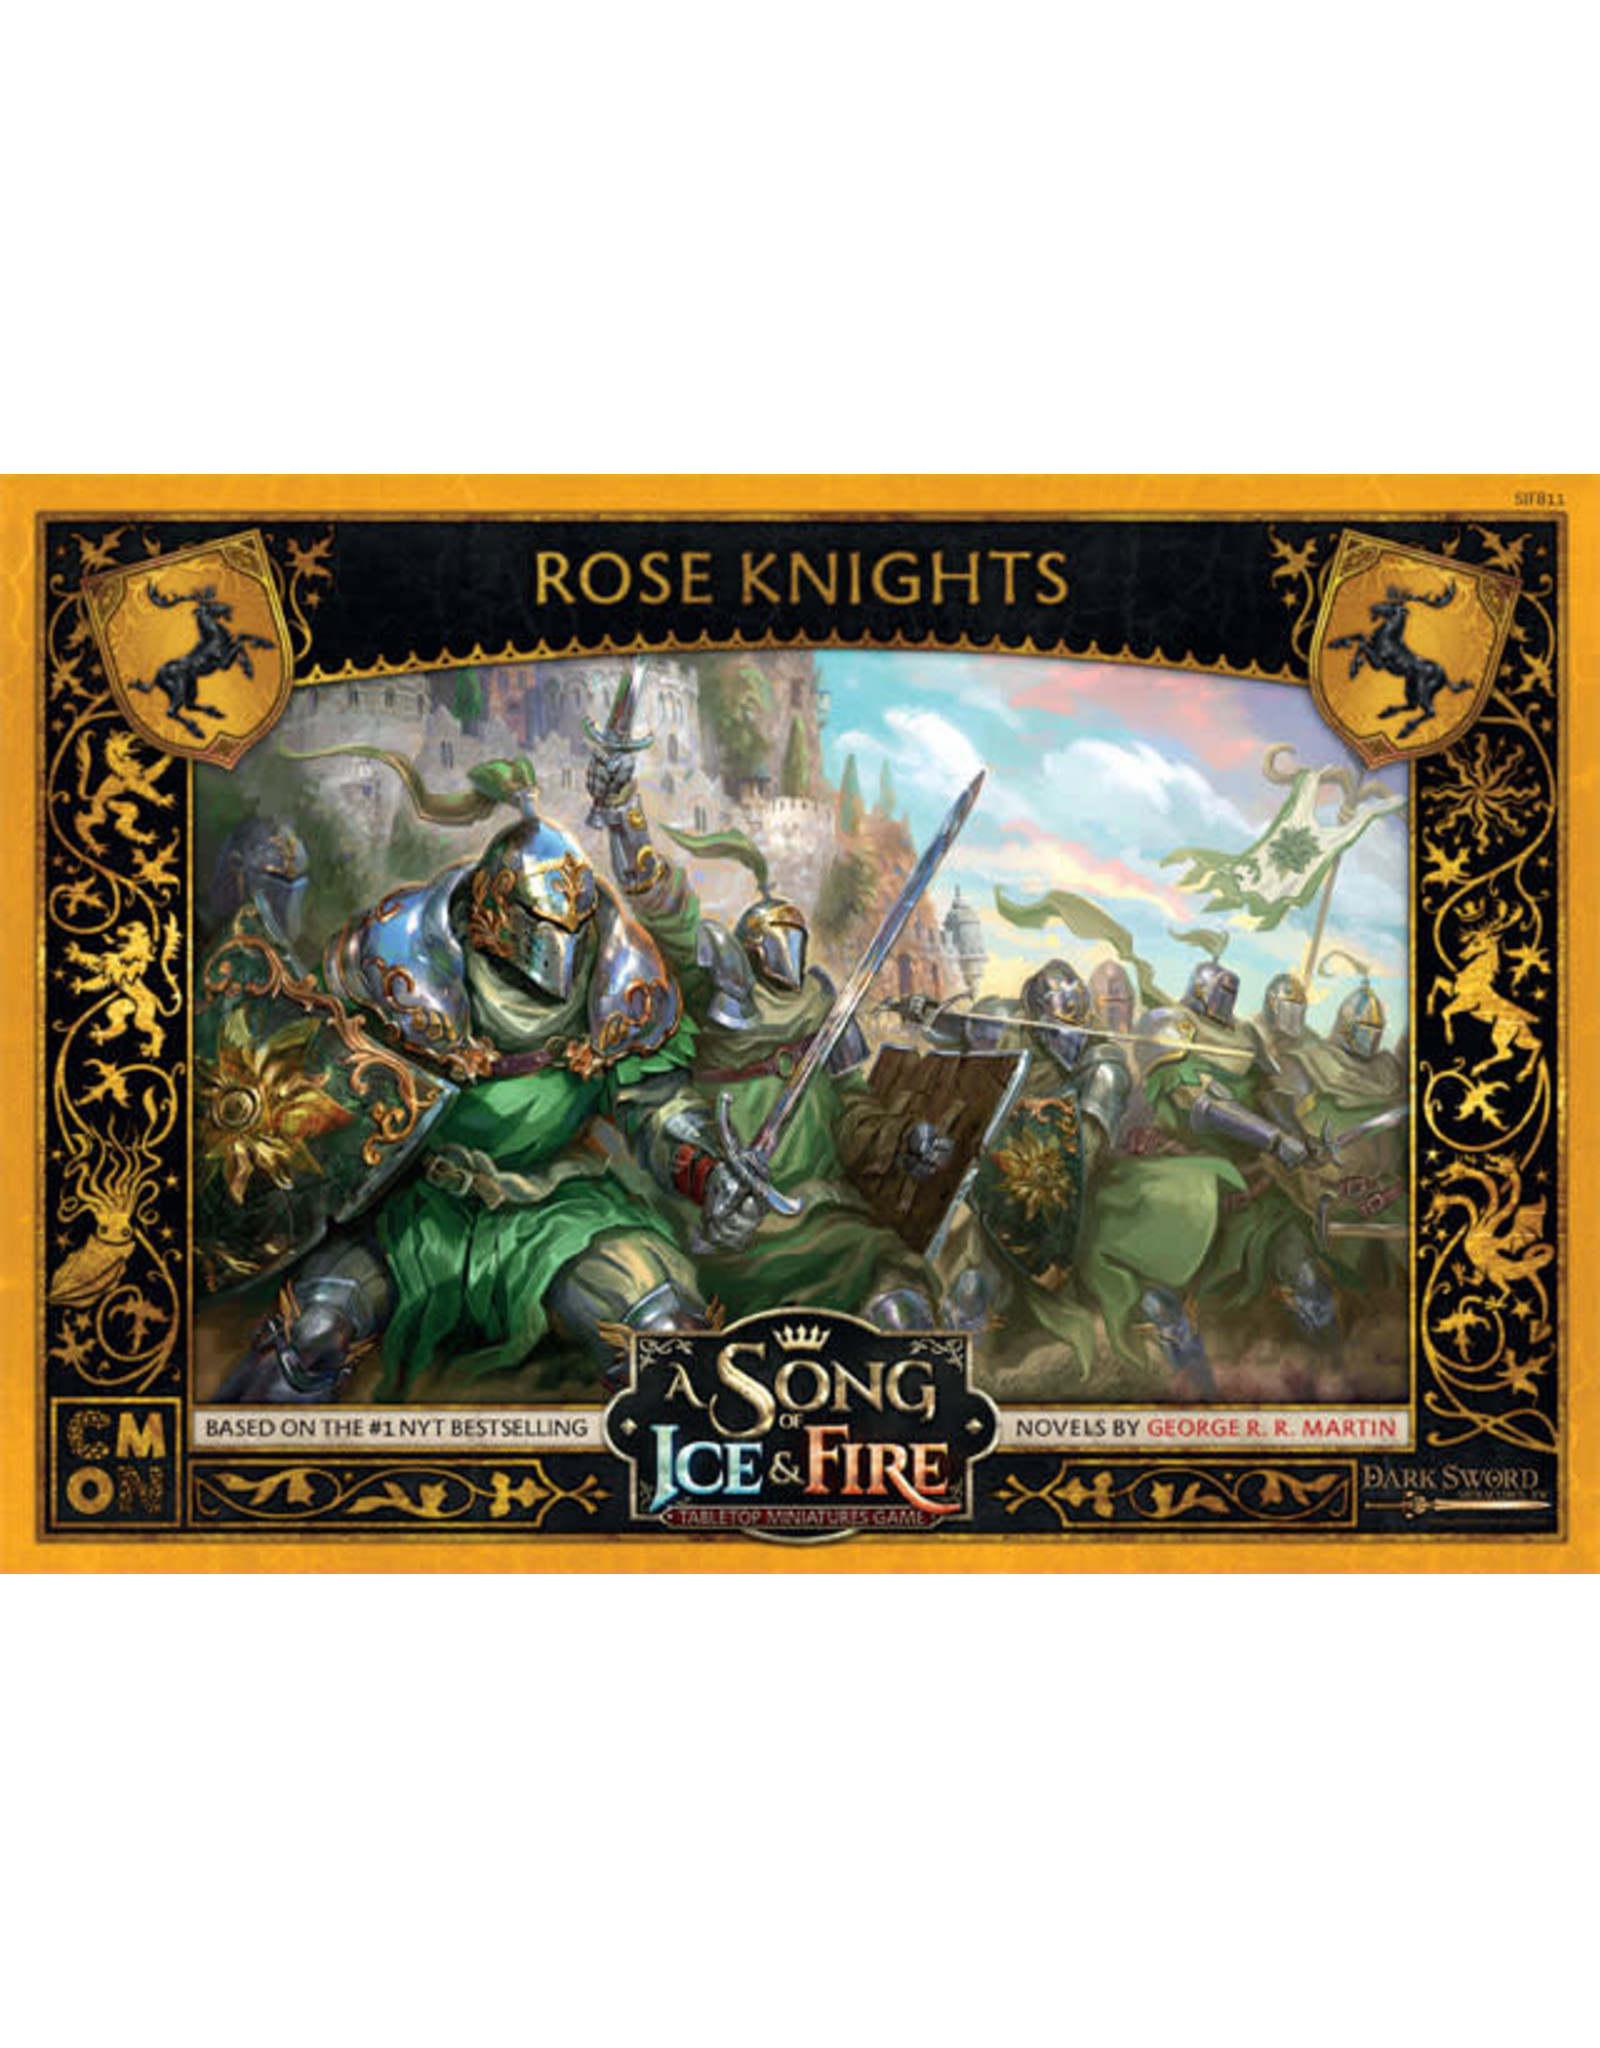 CMON A SONG OF ICE & FIRE: ROSE KNIGHTS